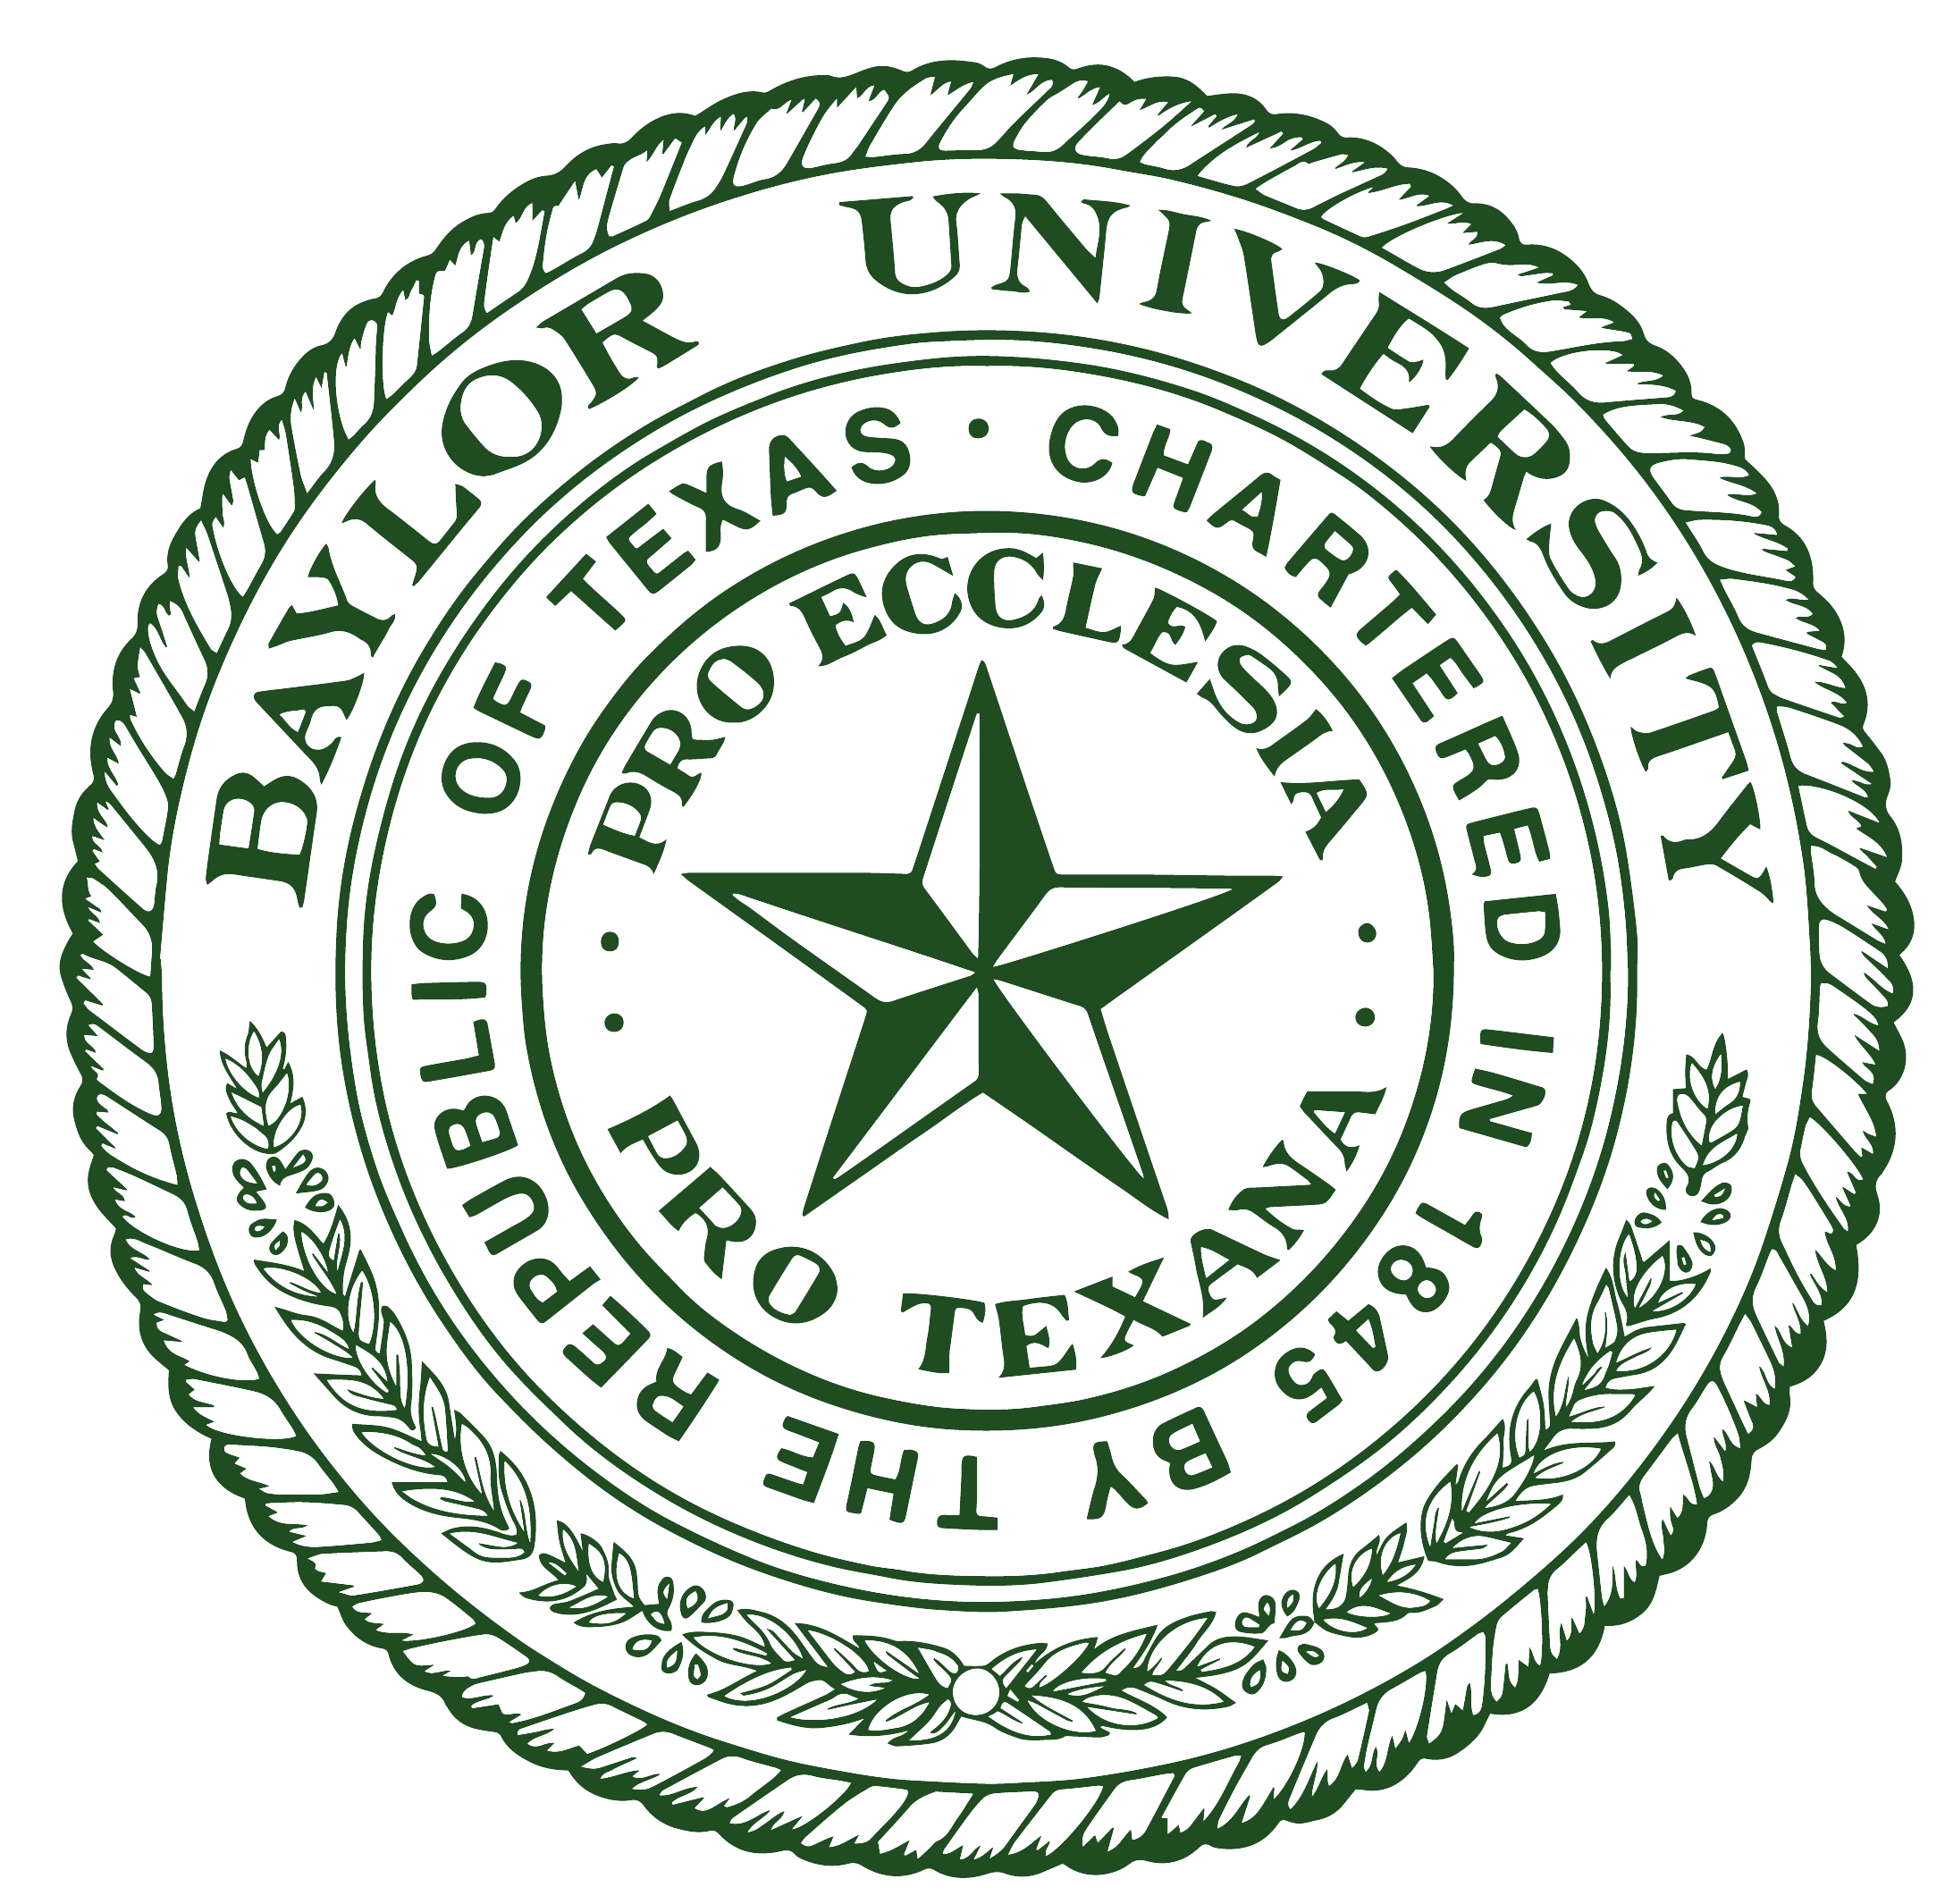 Baylor University is one of the many colleges and universities where